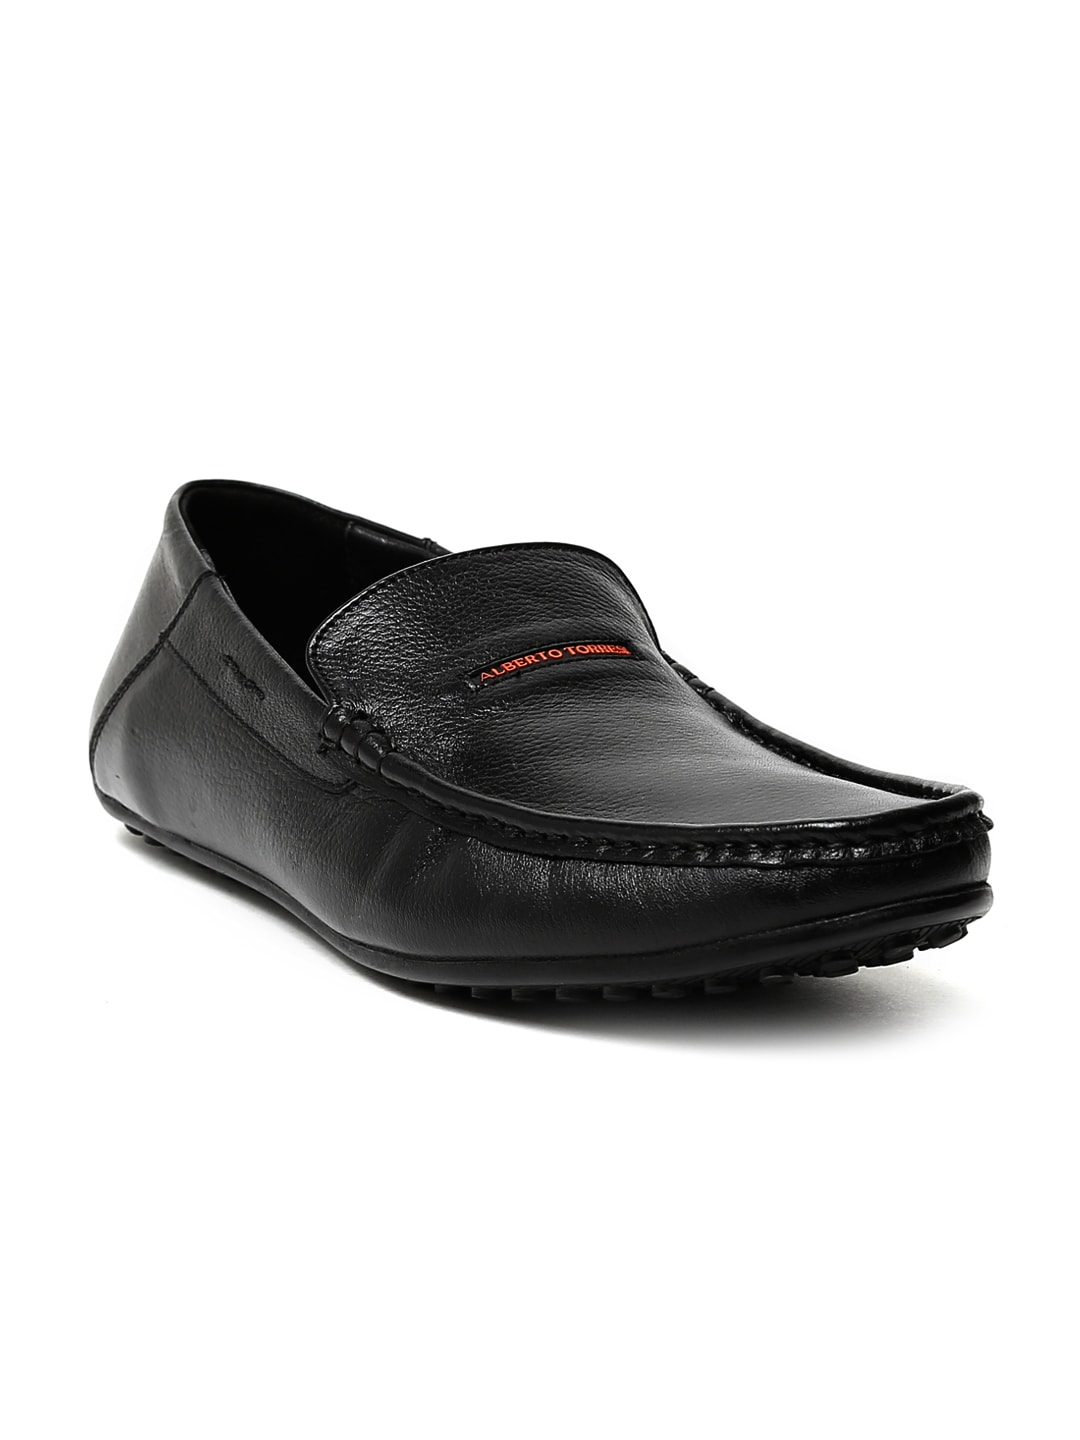 Alberto Torresi Men Black Leather Driving Shoes image